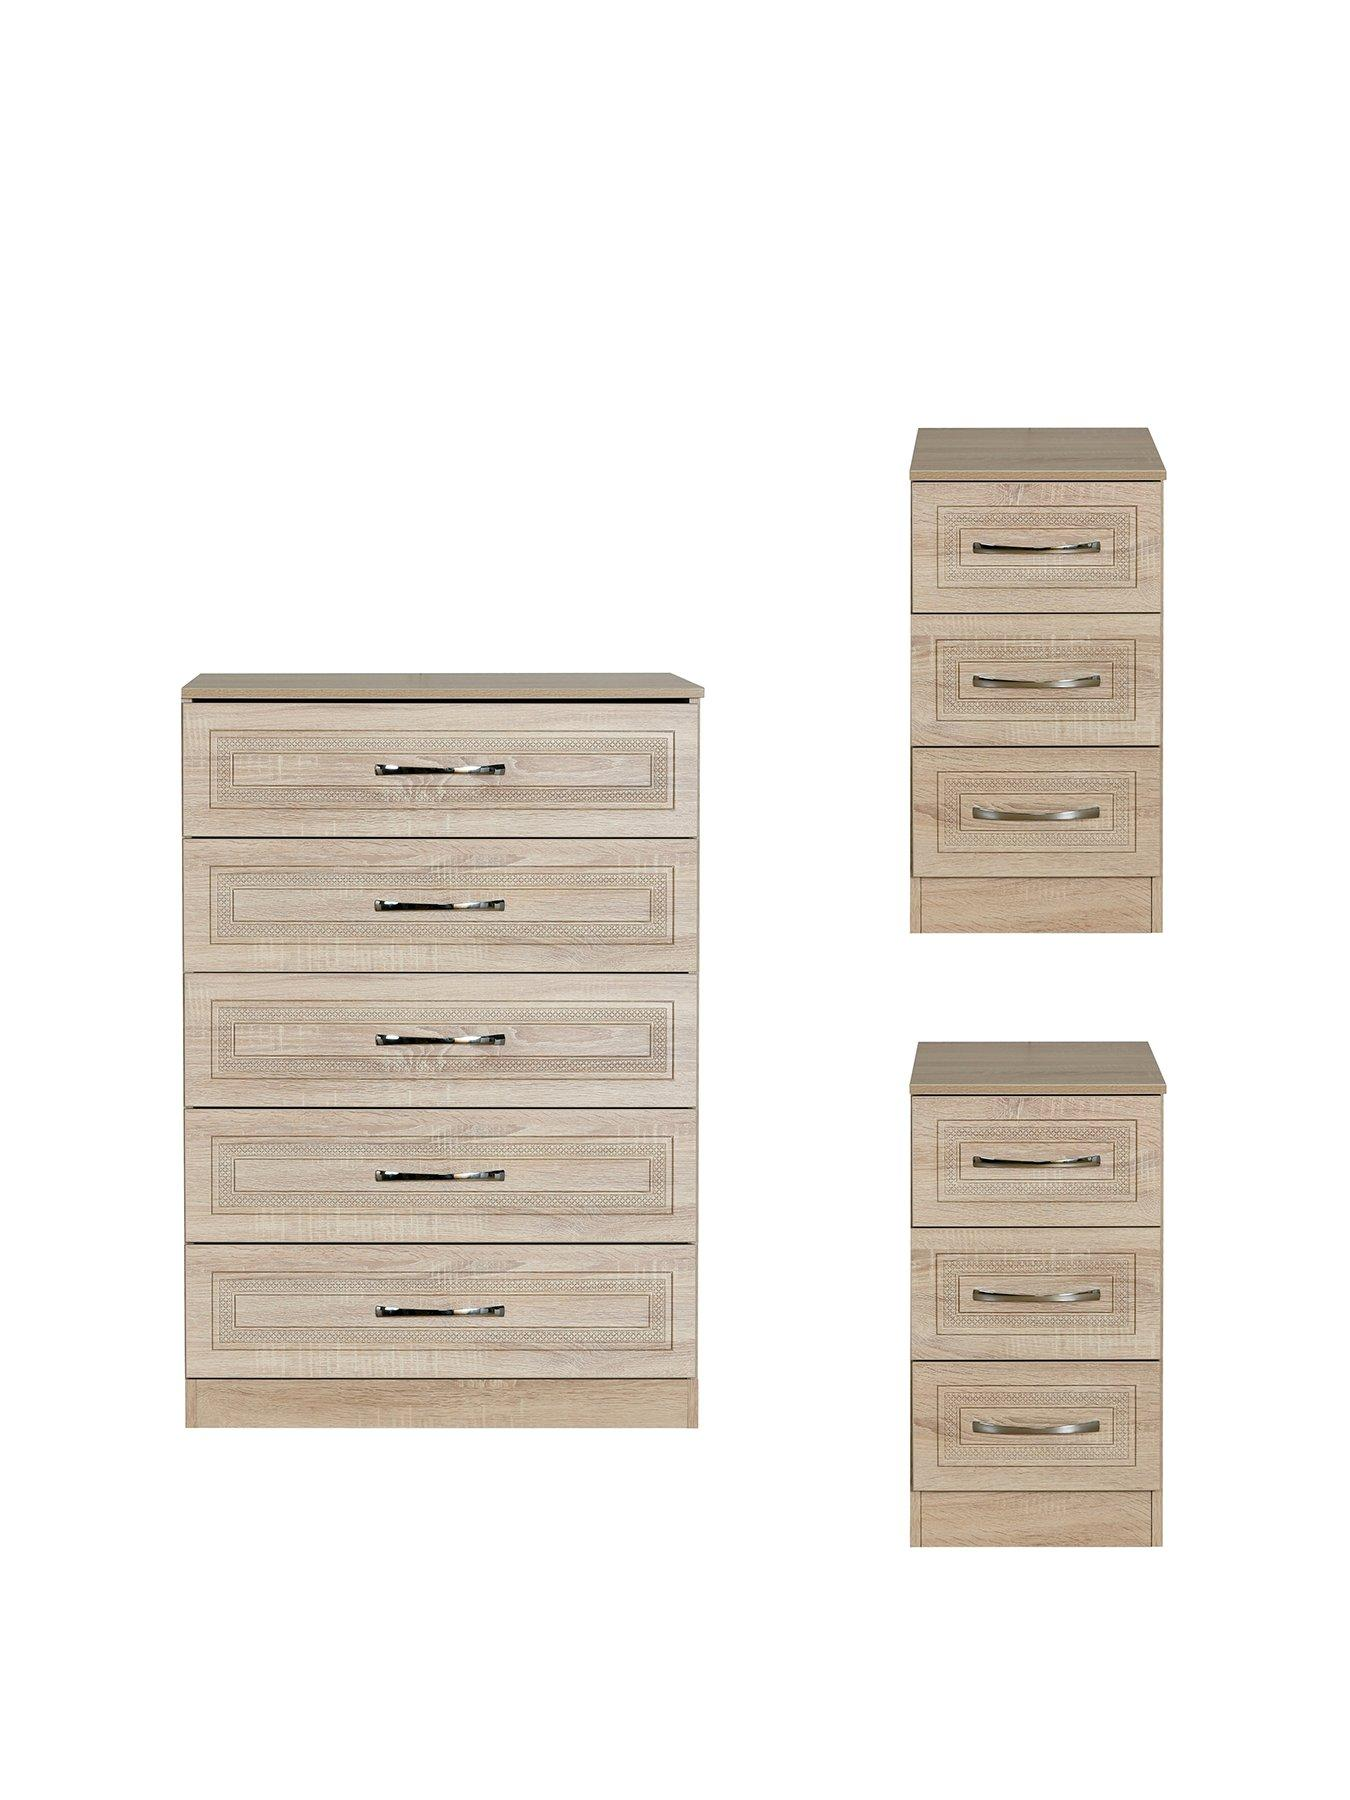 Wido Black 4 Piece Bedroom Furniture Set Includes Wardrobe 5 Drawer Chest Of Drawers Bedside Tables Gloss Matt